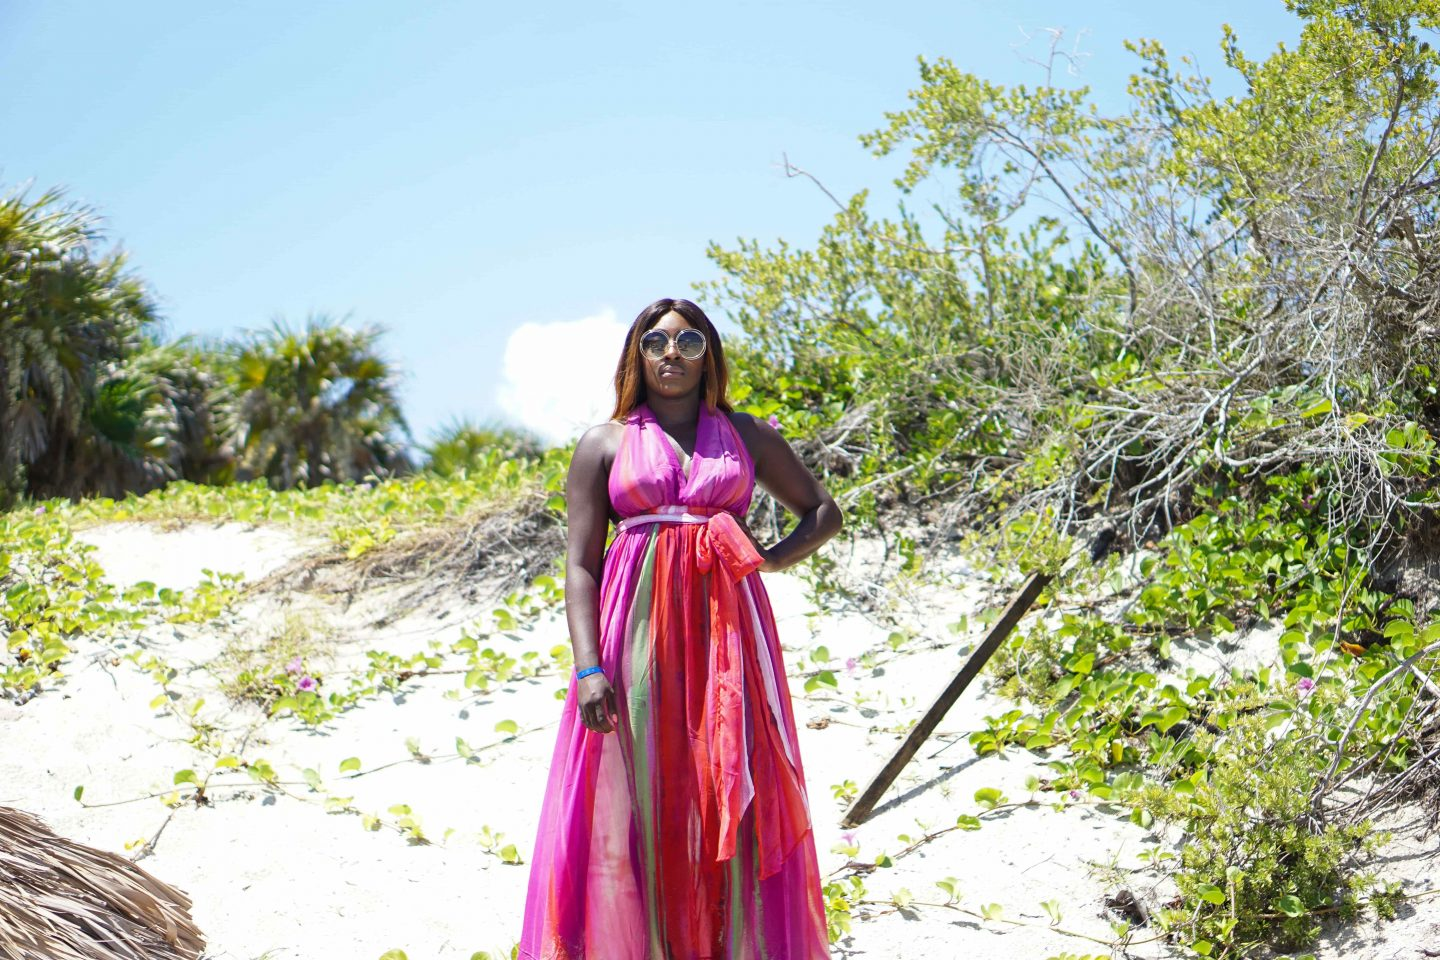 Varadero, Beach Dresses & Chloé Sunglasses 7 - ASOS Beach Dress back - Style and the Sass